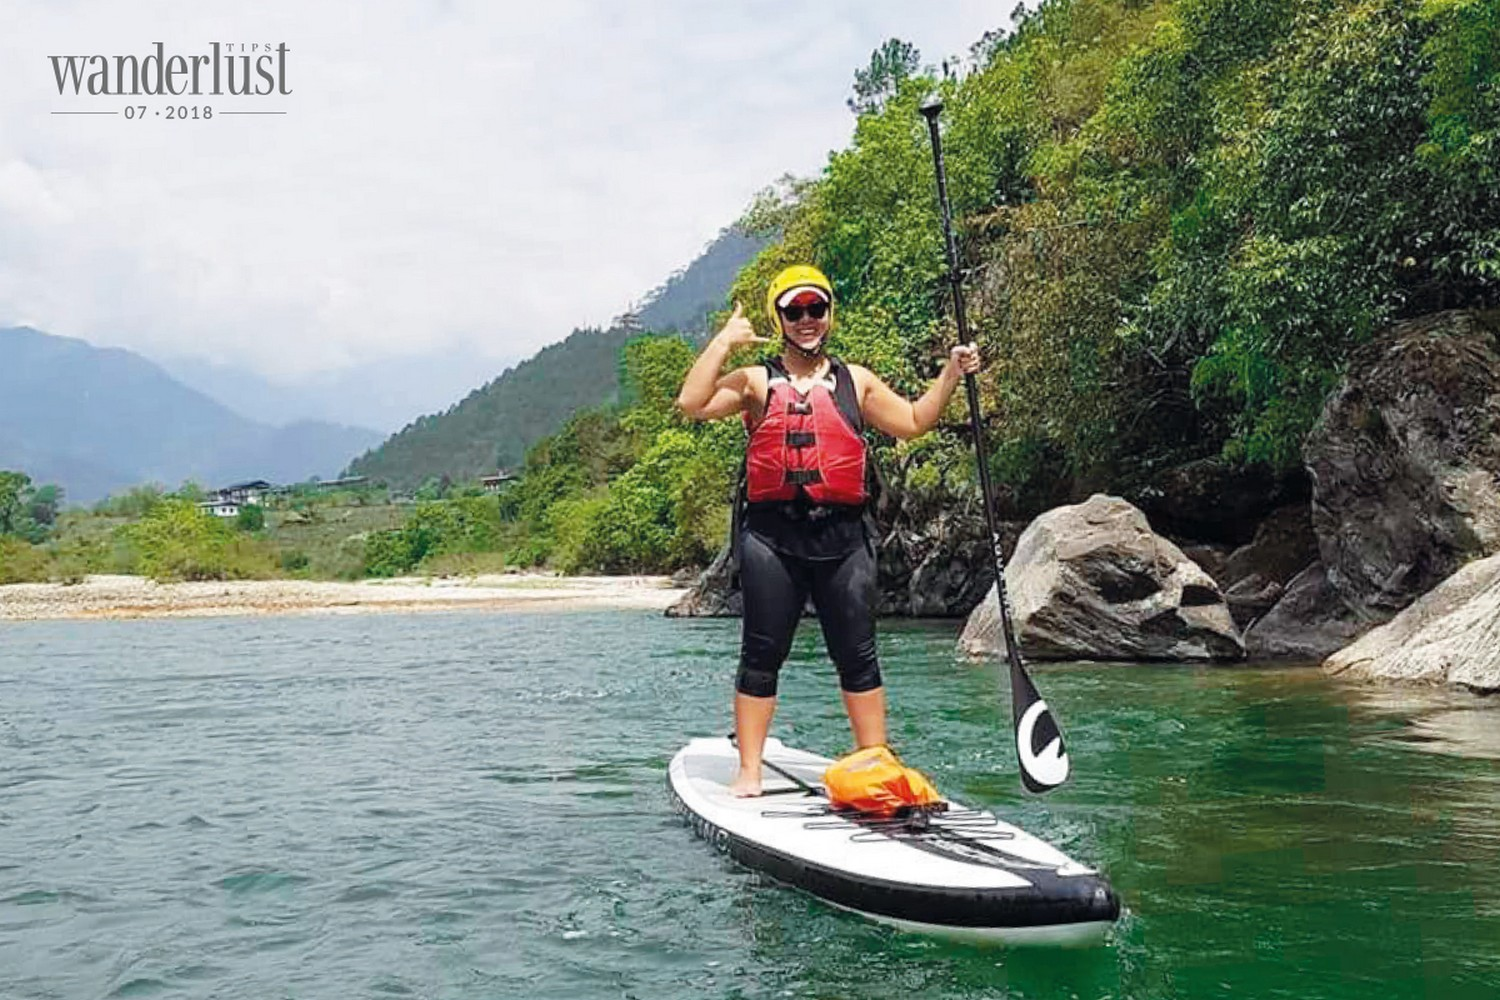 Wanderlust Tips Magazine   Stand-up Paddle boarding being adrift a faraway land (part 2)